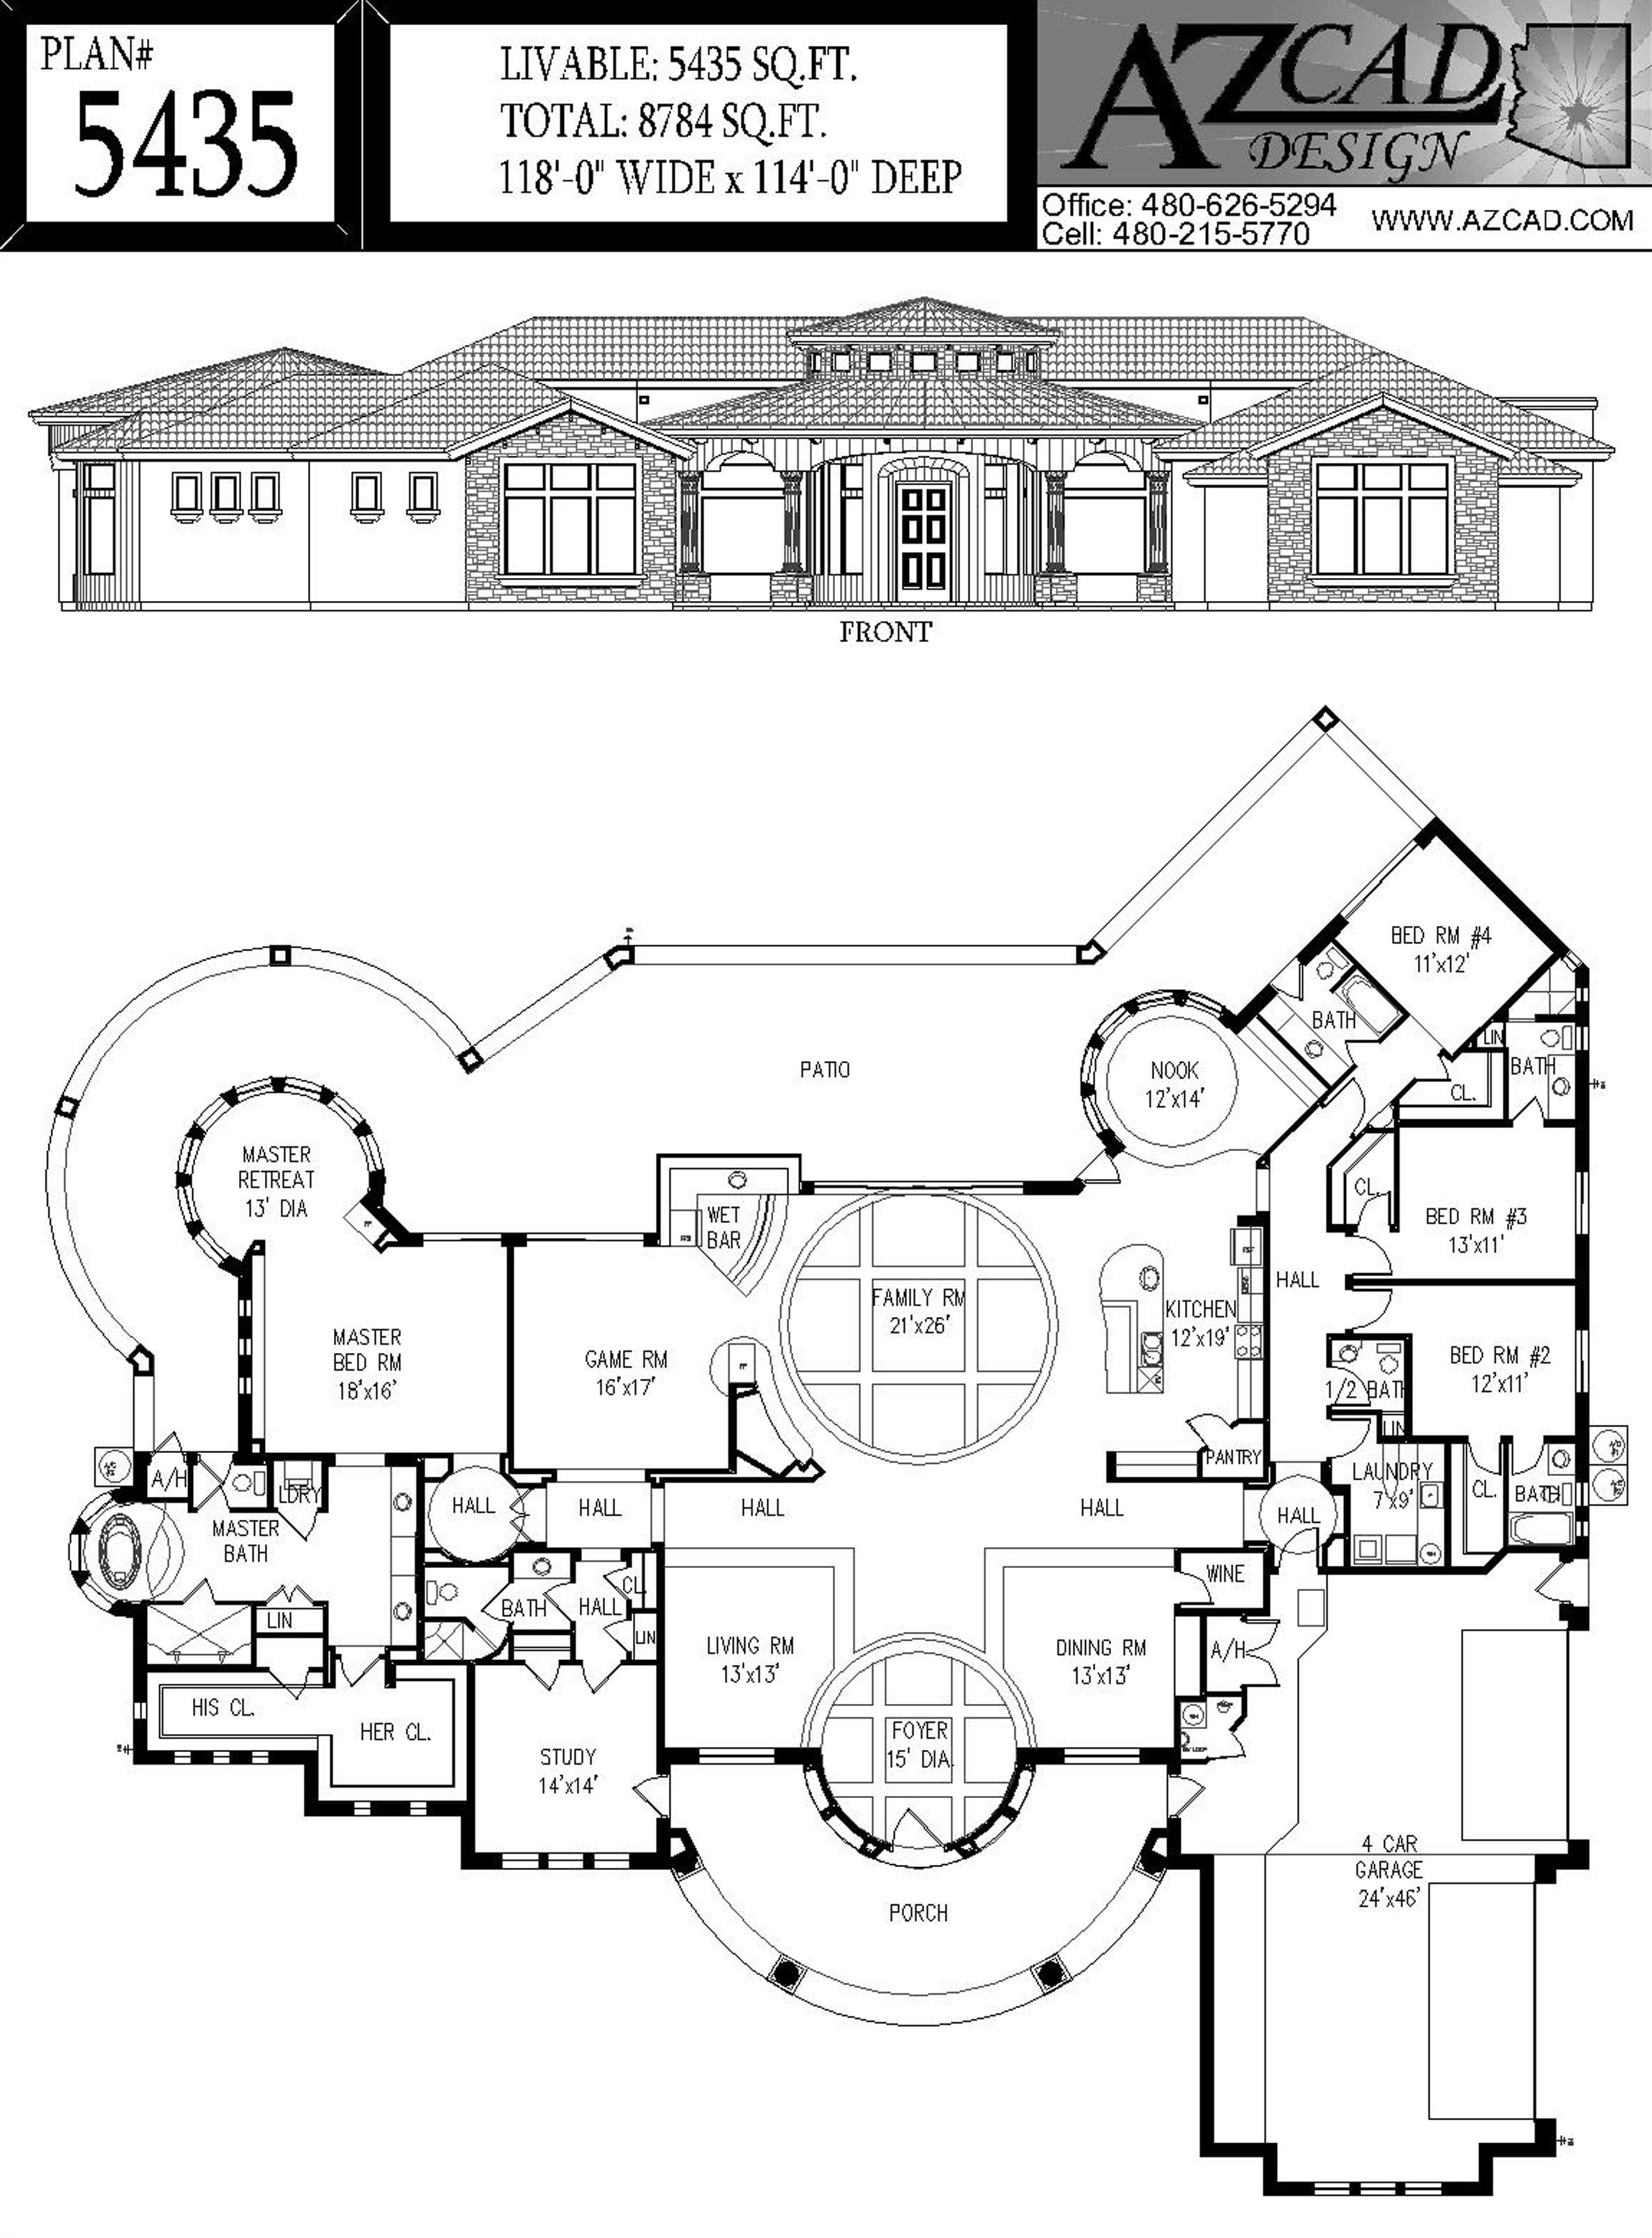 Azcad Com Drafting Arizona House Plans Floor Plans Houseplans Arizona House Floor Plans House Plans